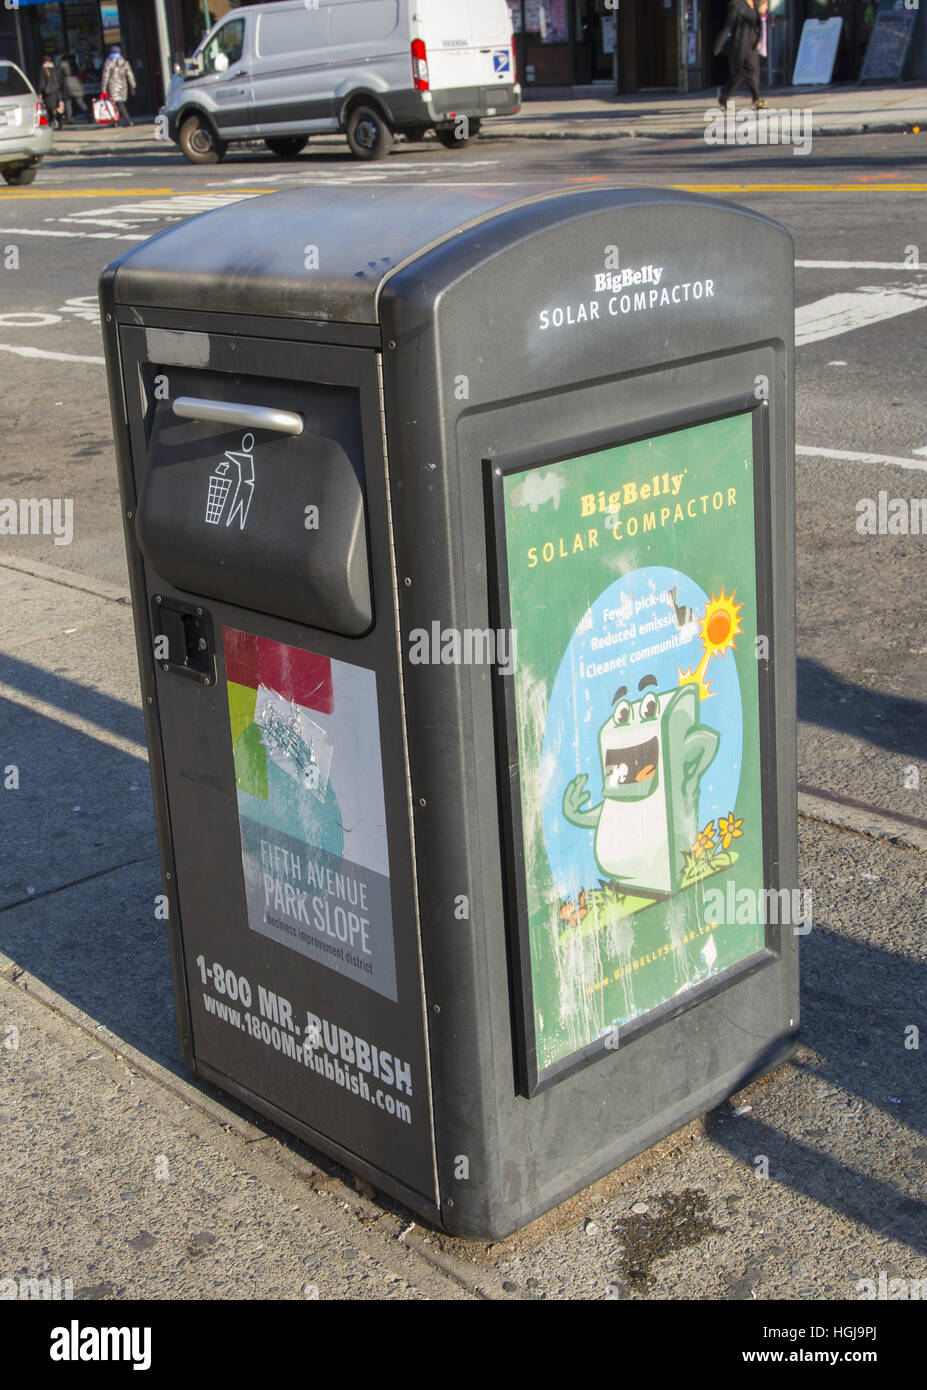 Trash can with solar powered compactor on the street in What is trash compactor and how does it work